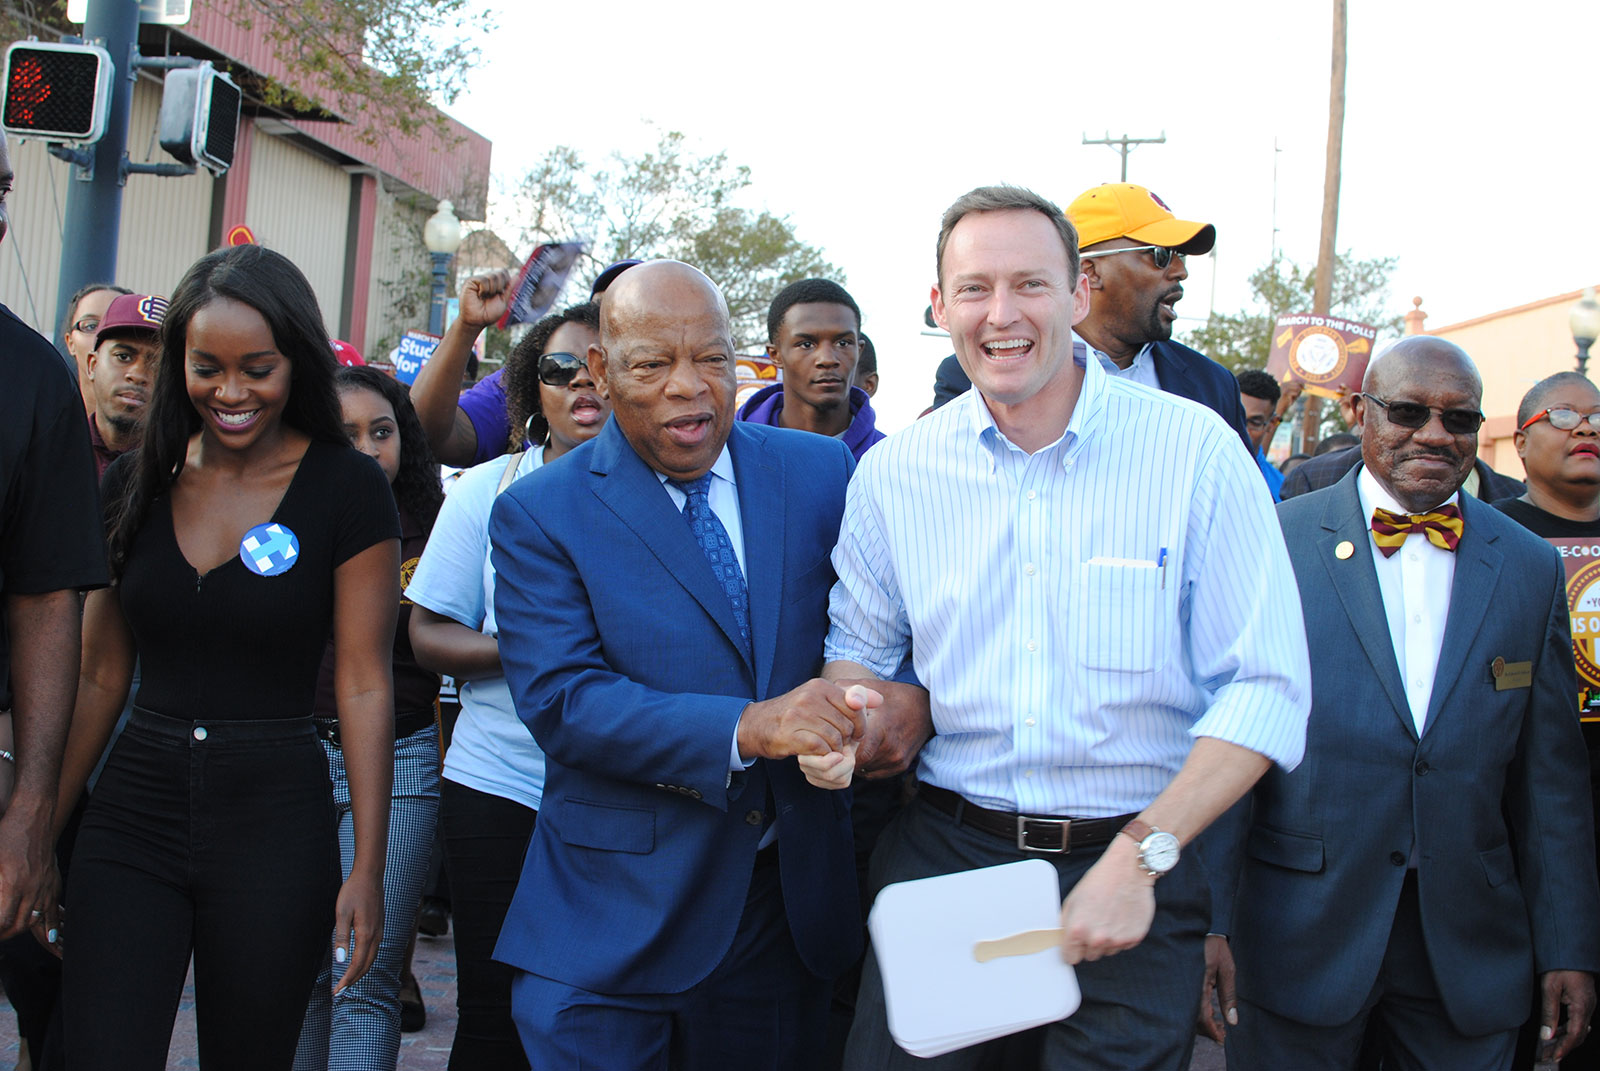 Stephen Cummings, Patrick Murphy joins Bethune Cookman University's march to the polls, 2016